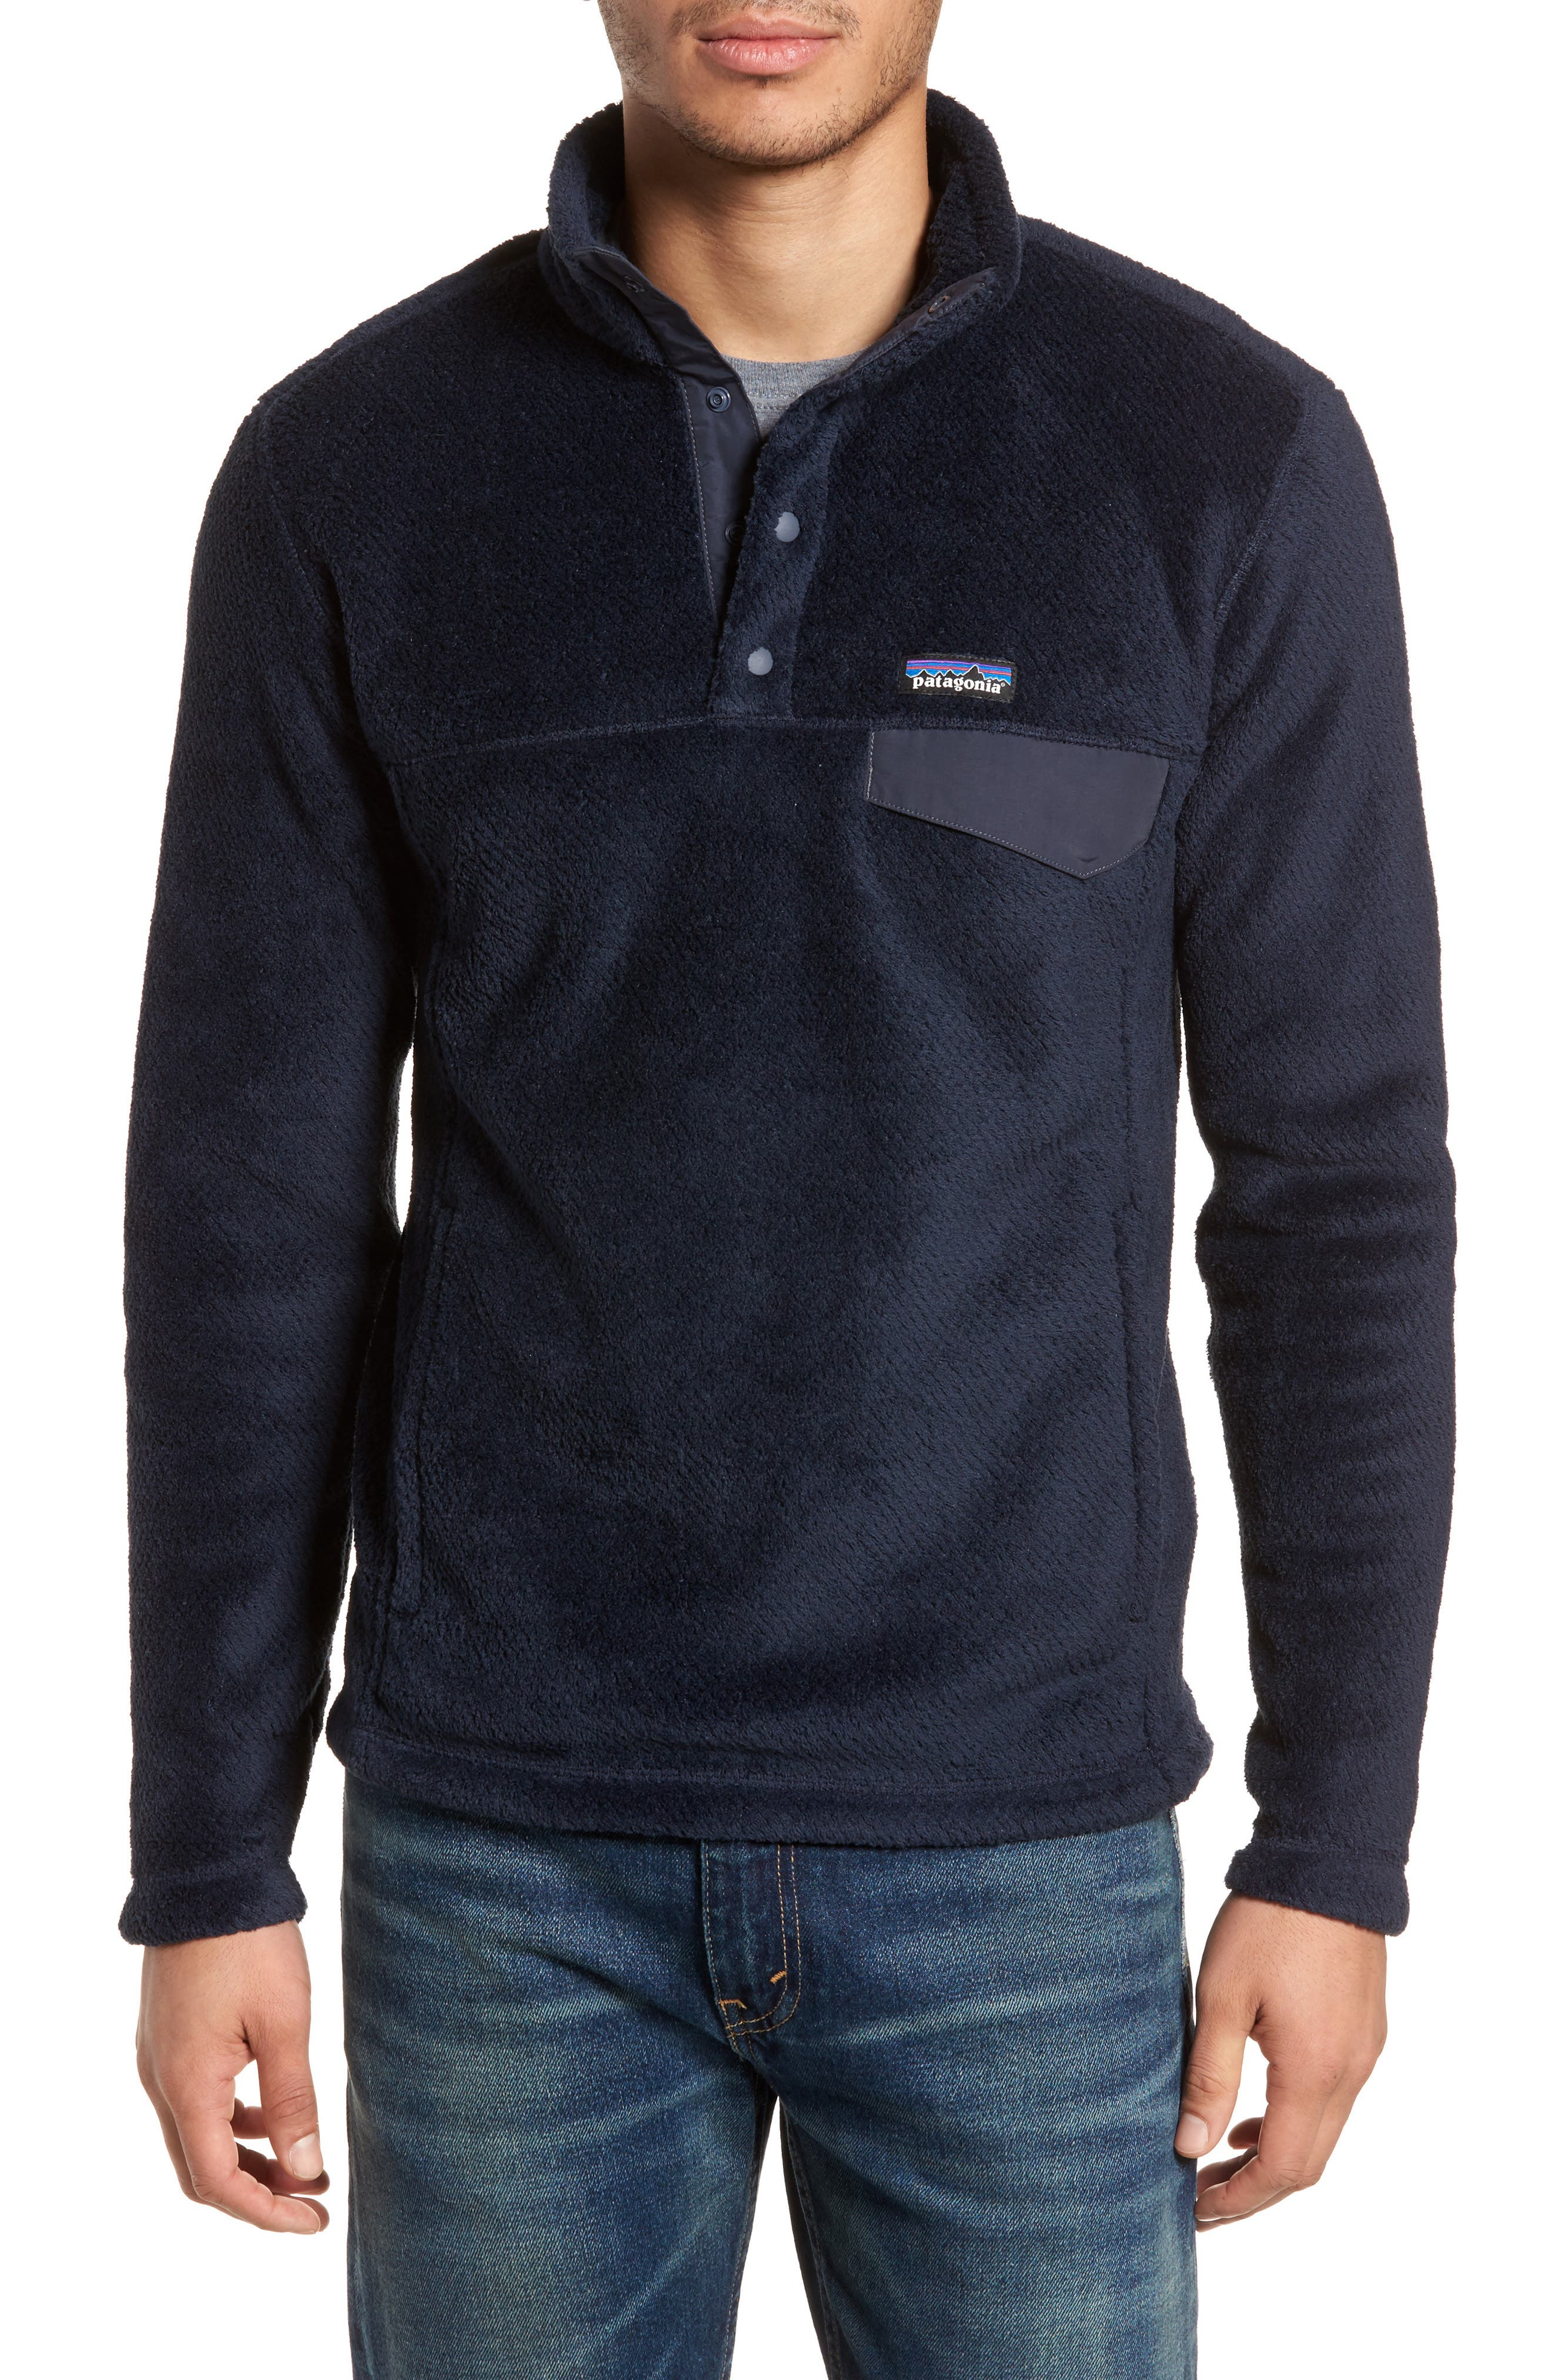 Re-Tool Snap-T<sup>®</sup> Pullover,                             Main thumbnail 1, color,                             Navy Blue X-Dye